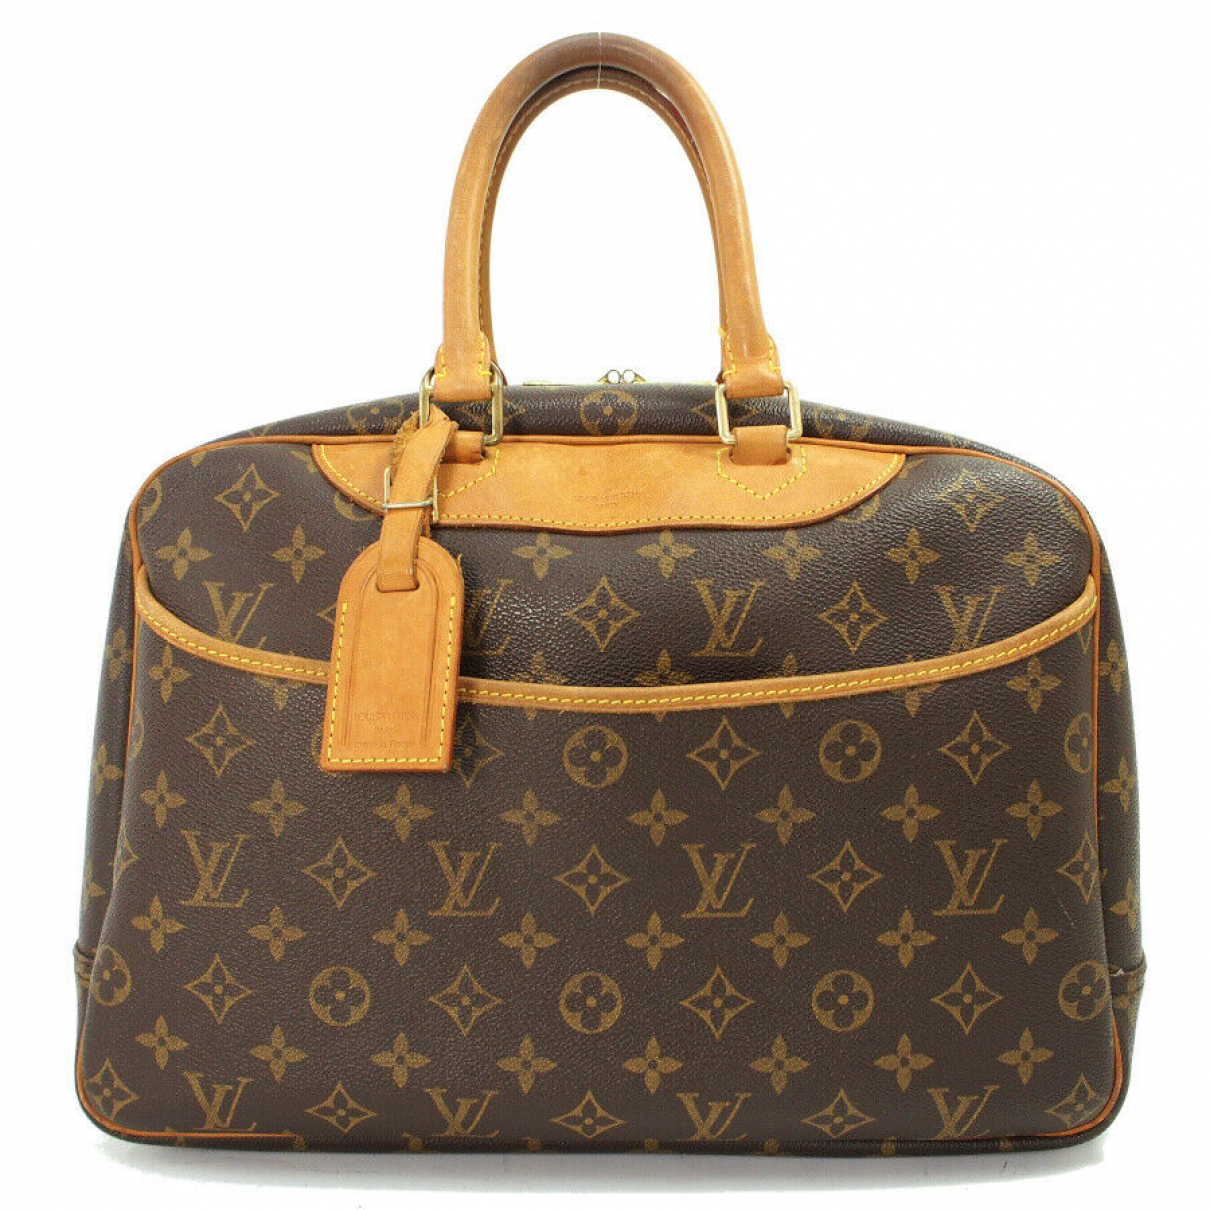 Louis Vuitton \N Handtasche in Leder